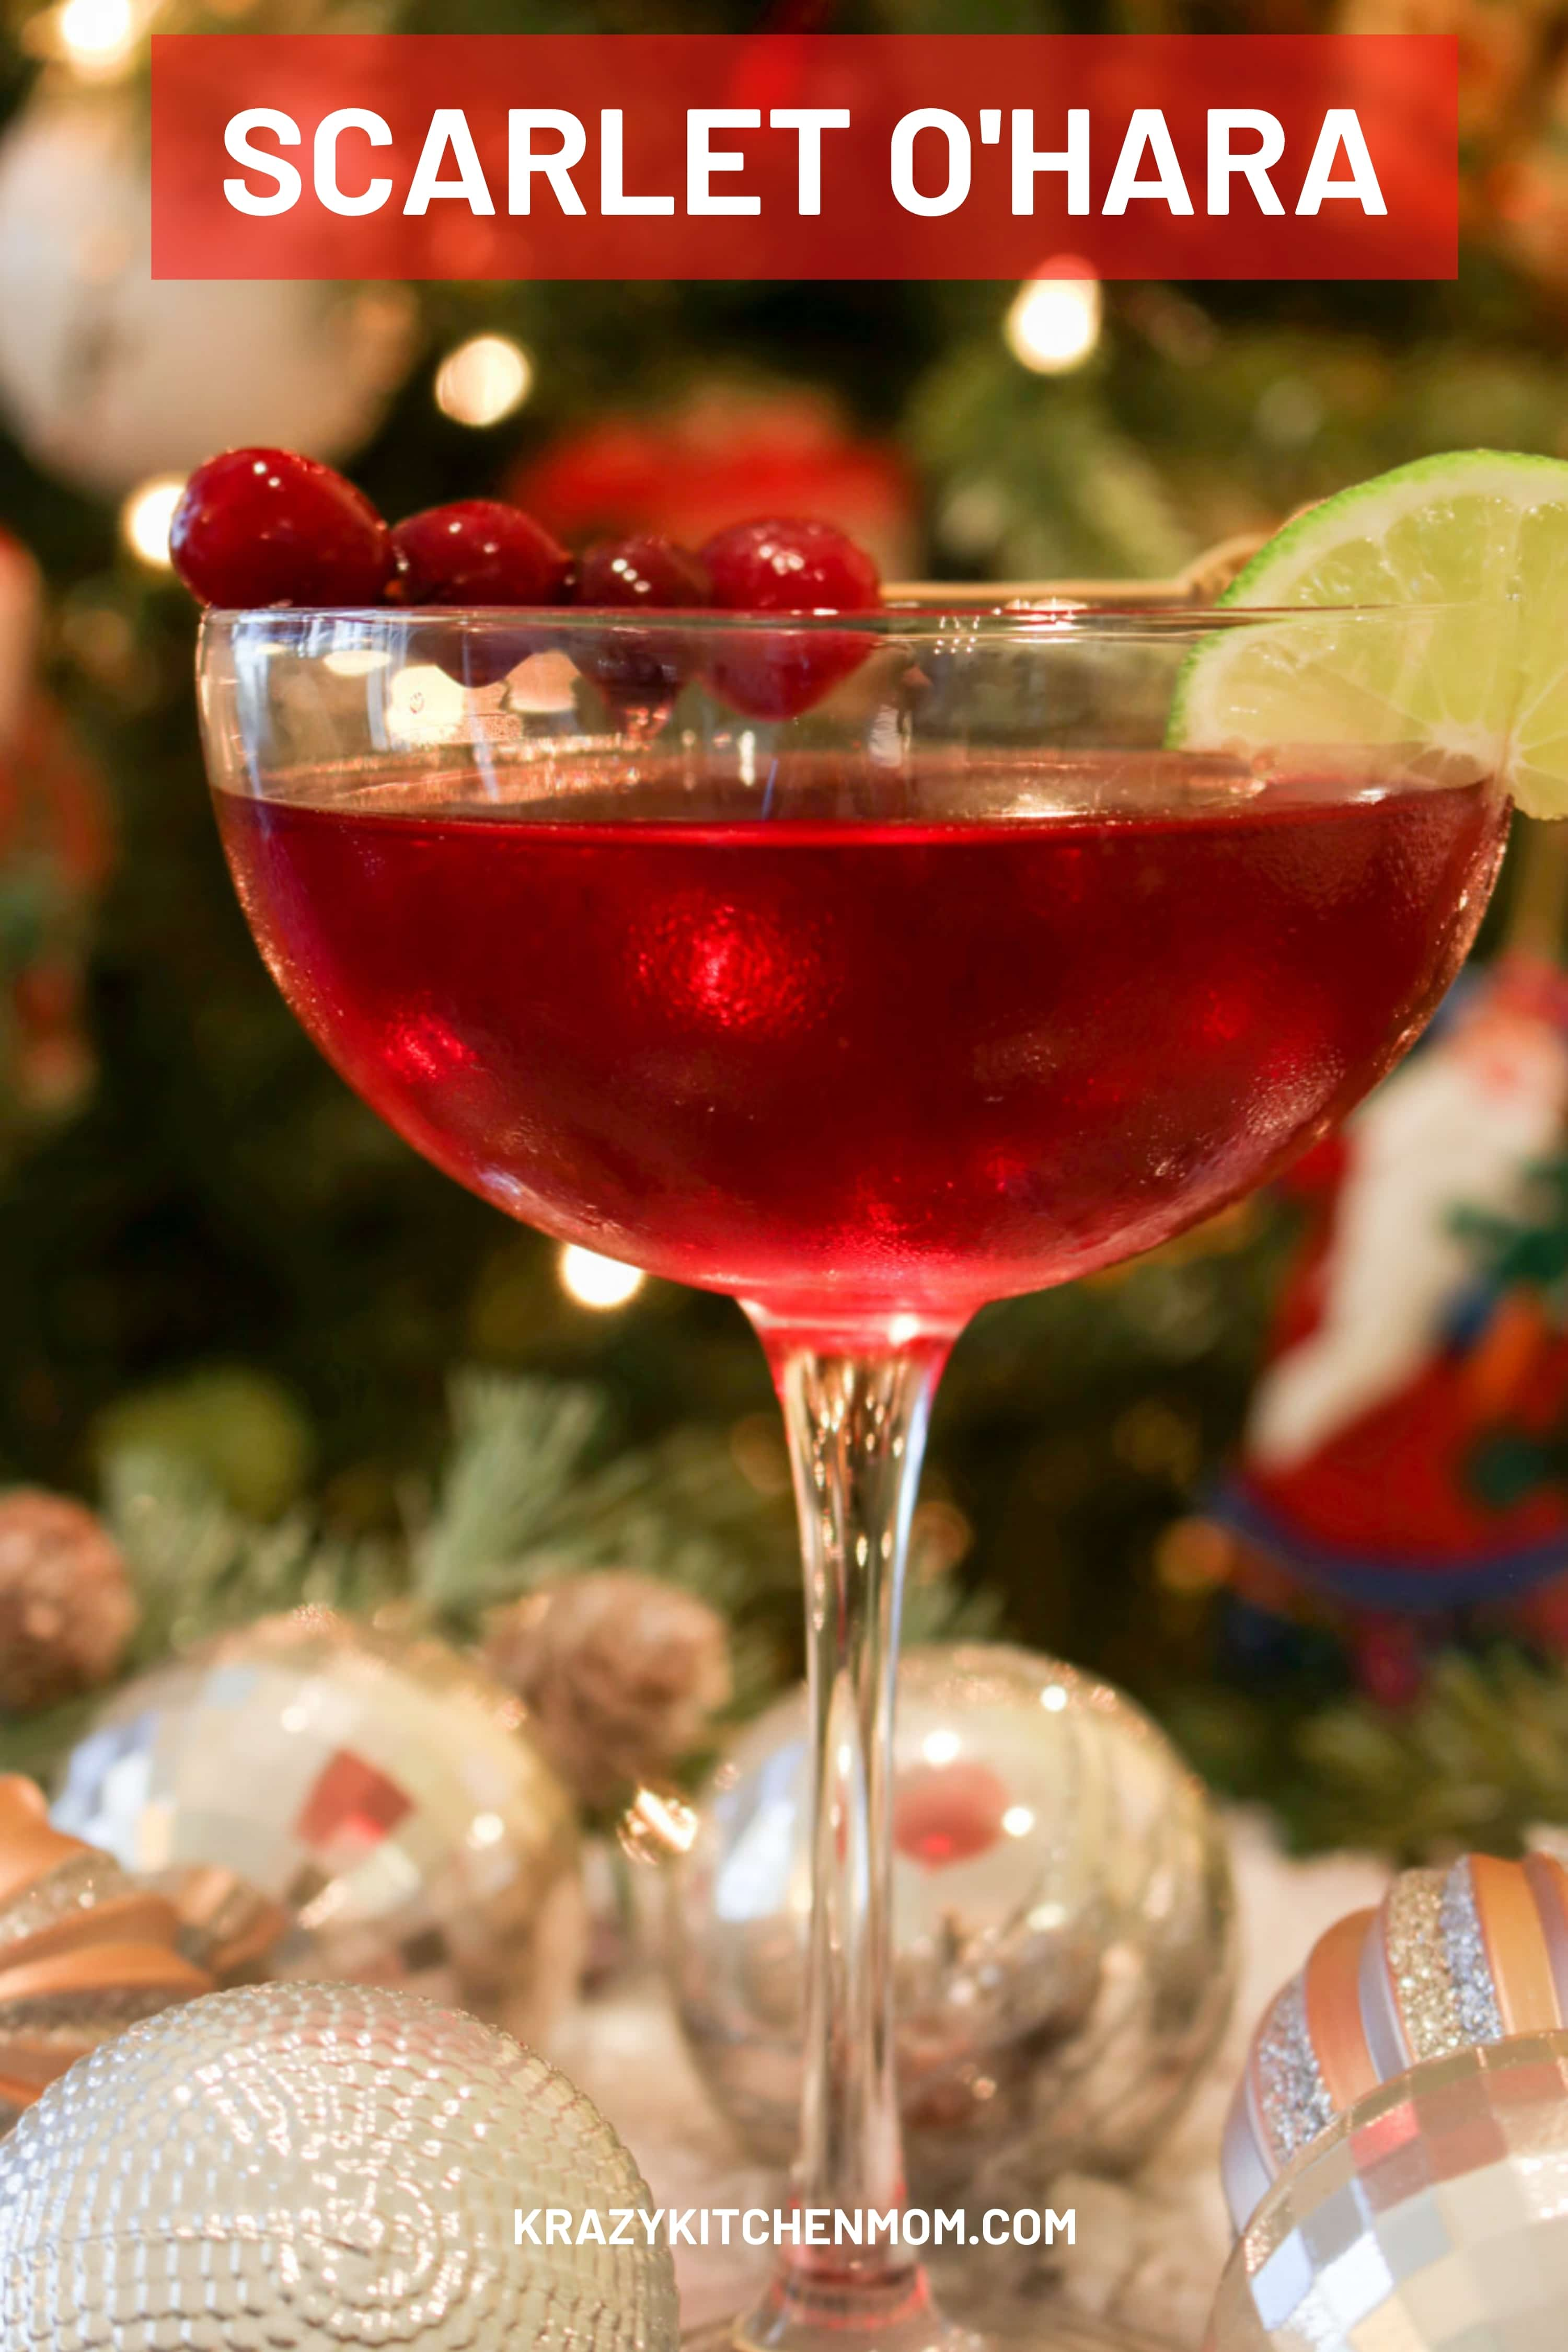 This nostalgic cocktail is a tradition in my family. We only make and serve it during the holidays between Thanksgiving Day and New Year's Day. via @krazykitchenmom